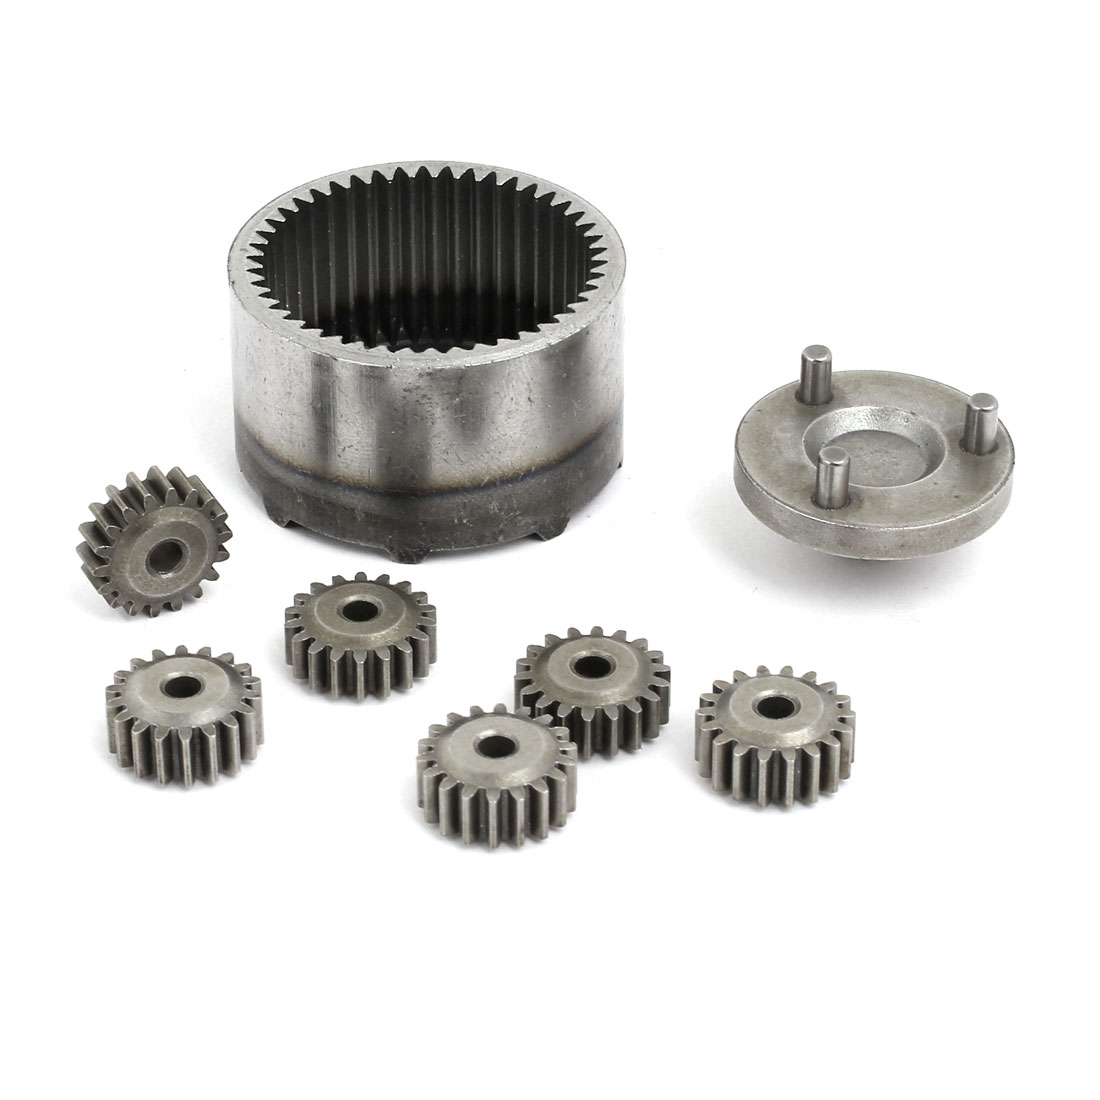 Metal Electric Drill Parts Gear Set for